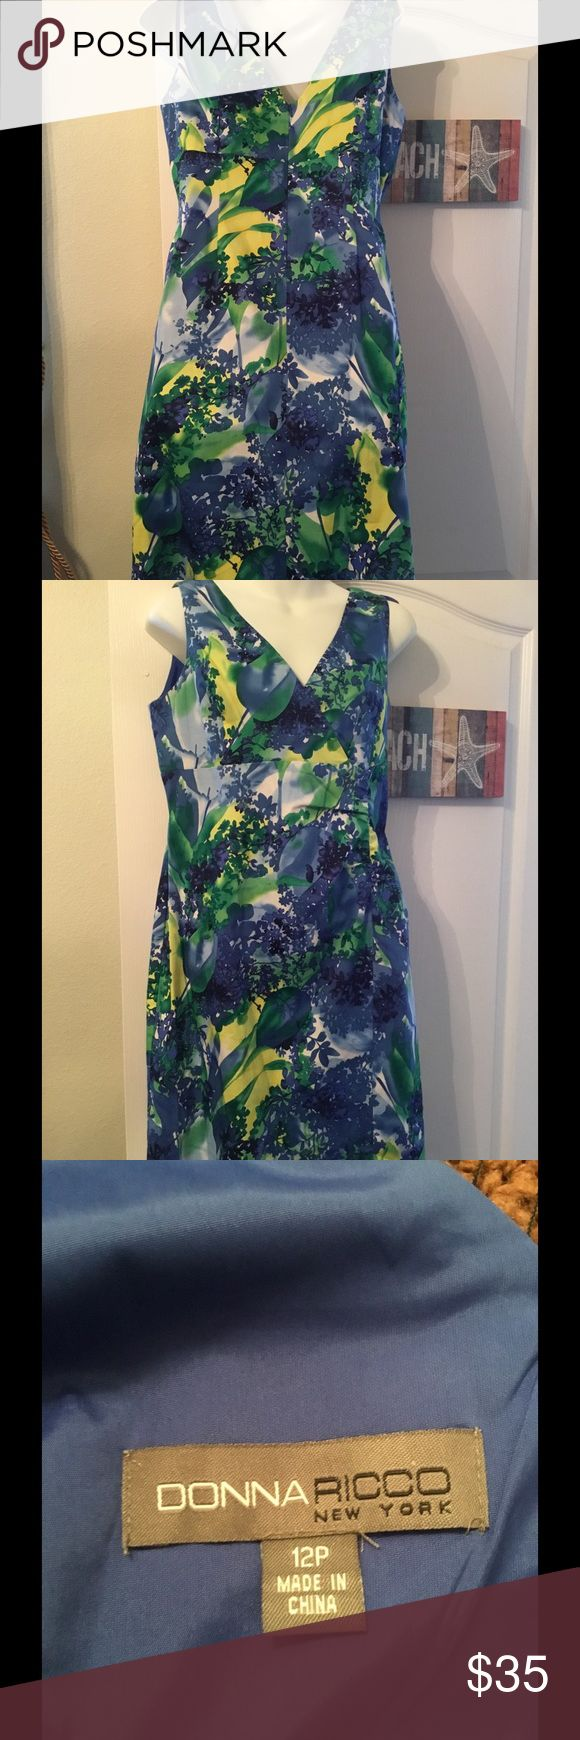 EUC Donna Ricco dress Lovely sleeveless Donna Ricco dress with gather at waist. App 38 inches shoulder to hem. Donna Ricco Dresses Midi